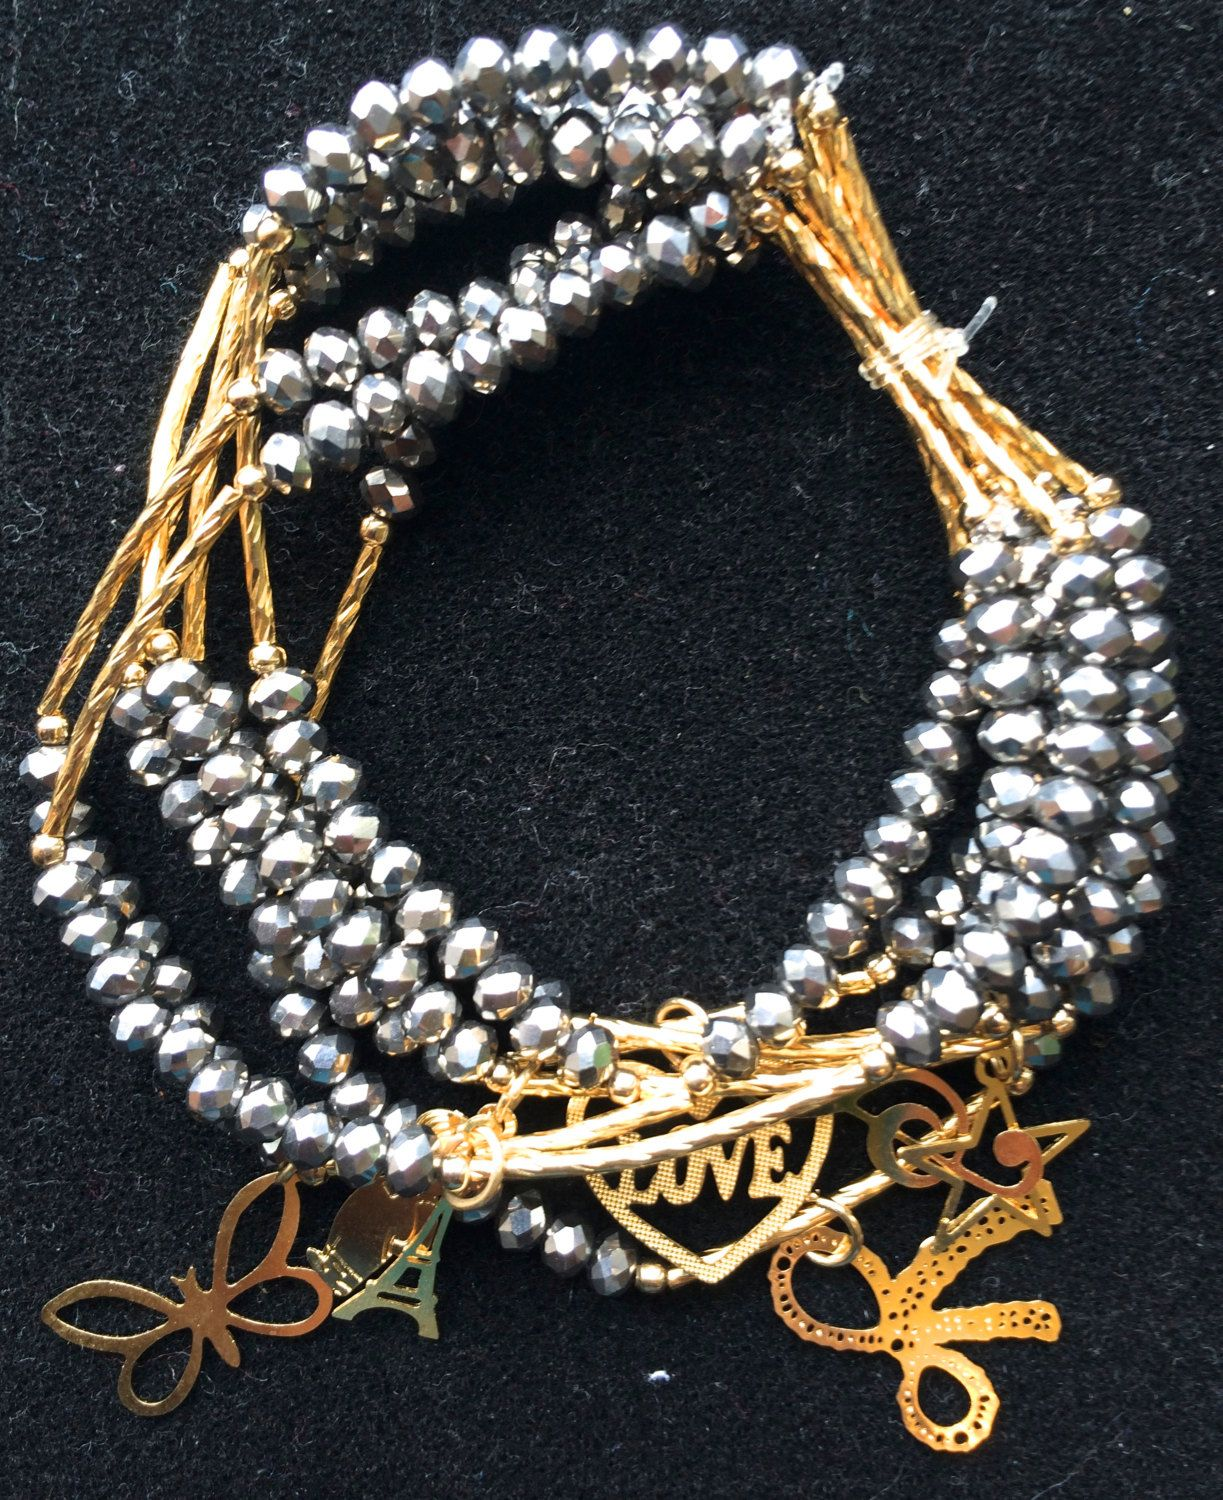 Bracelet Made Of Silver Colored Crystal Like Beads With A Gold Charm Semanario Set